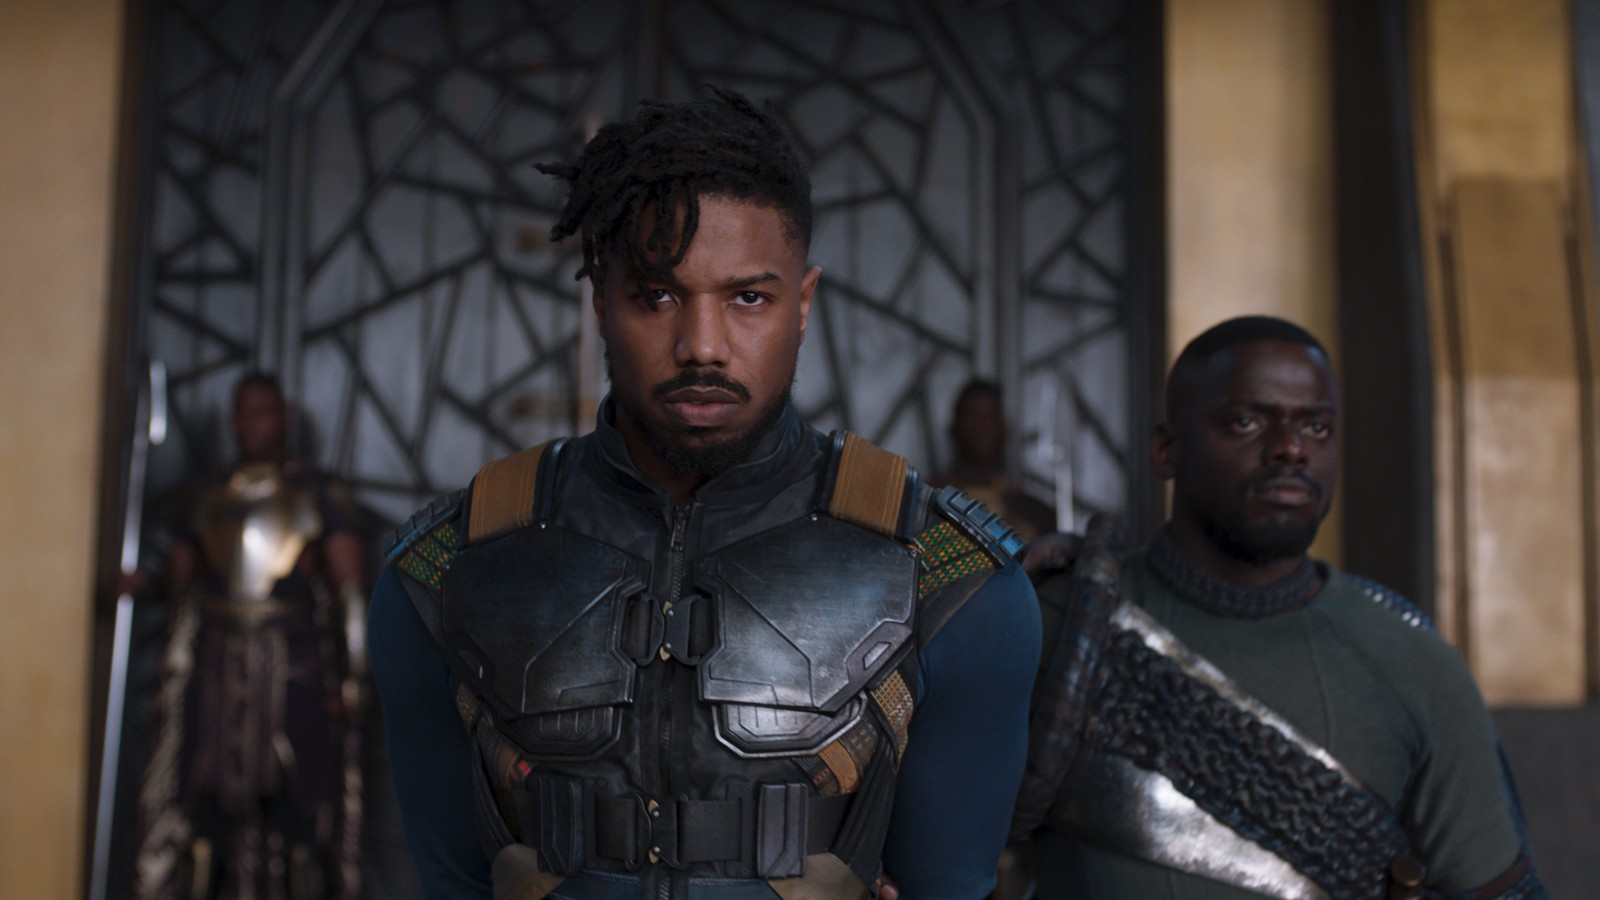 7. Black Panther: Wakanda Forever: The studio chose to honor Chadwick Boseman's legacy by ending the character of King T'Challa and not resurrecting him through CGI or VFX. This immediately sparked speculation that Erik Killmonger, the main antagonist of Black Panther, would return in the sequel as the new Black Panther.